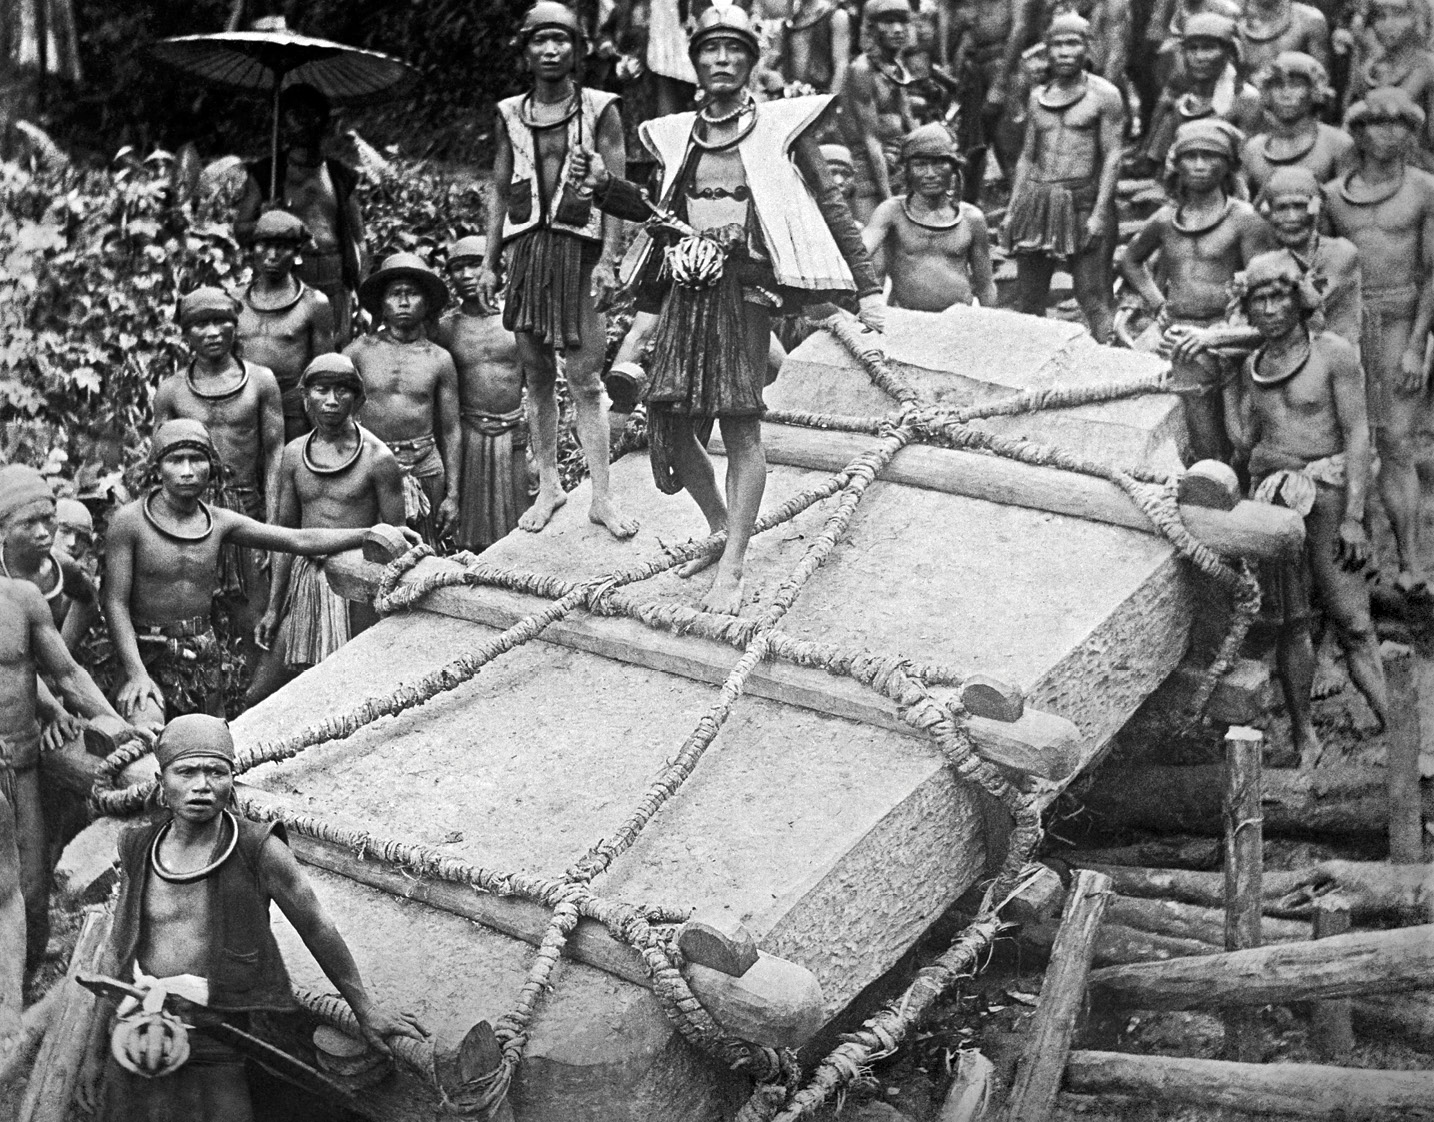 right This photograph, taken c.1915 on Nias, an island off the western coast of Sumatra, Indonesia, shows a stone-moving ceremony that involved hundreds of people. The event culminated in a feast. Were such celebrations also a part of the building of Stonehenge?